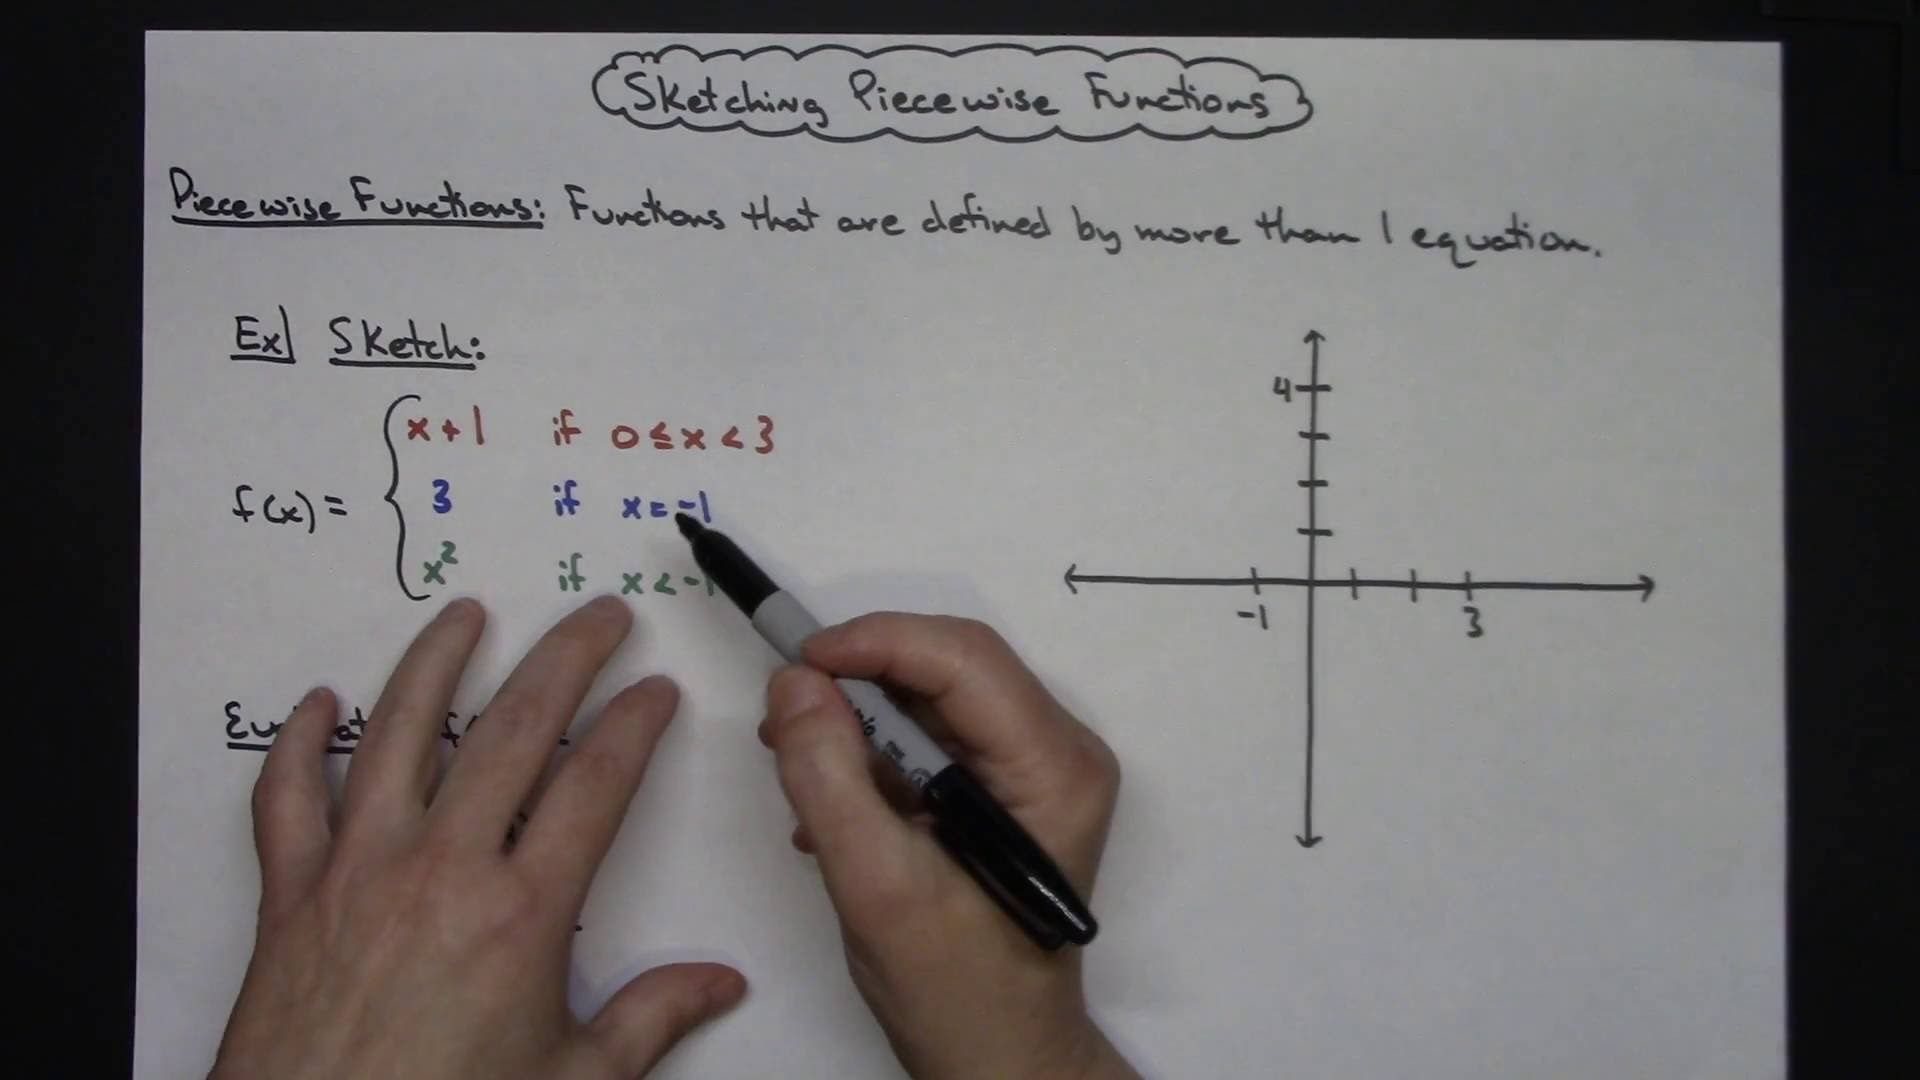 Sketching Piecewise Functions Maths Algebra Calculus Email Subject Lines [ 1080 x 1920 Pixel ]